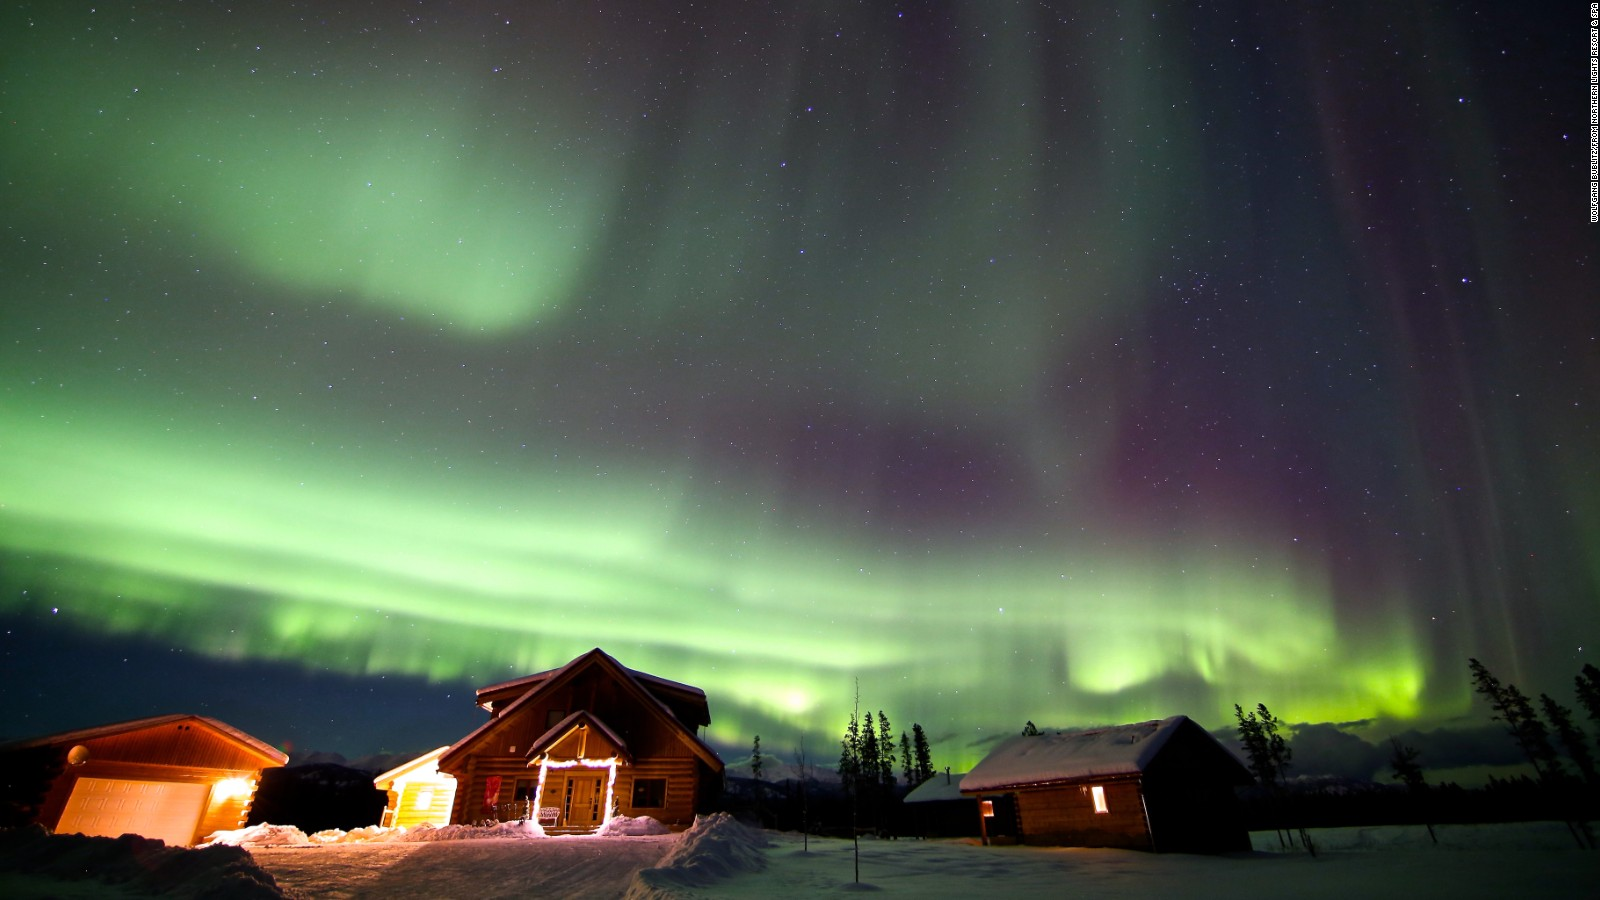 Northern lights hotels: 7 great stay-and-view spots | CNN Travel